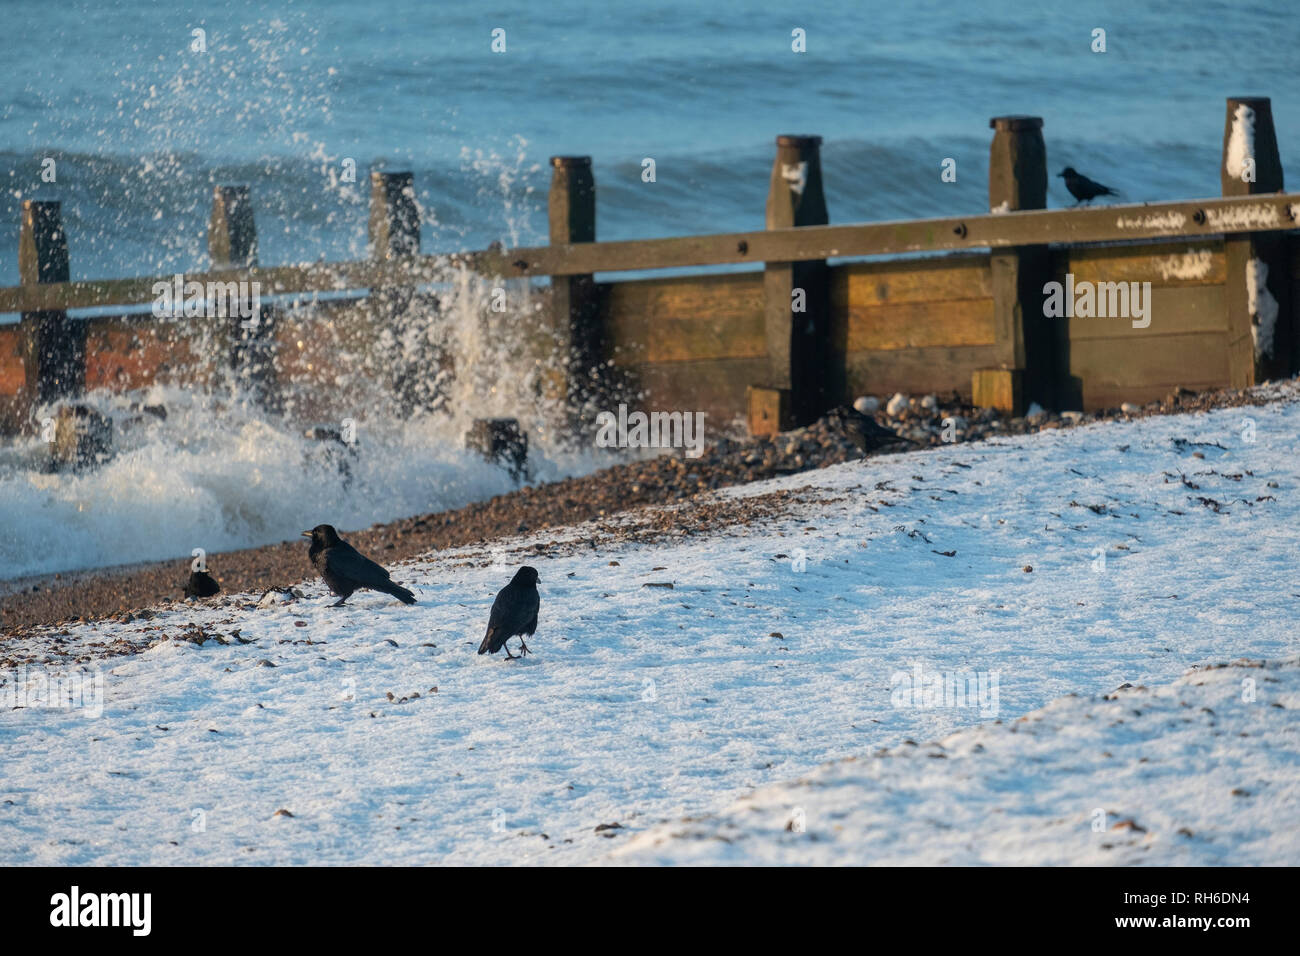 Ferring west Sussex, UK. Friday 1 st Febuary. UK weather. After moderate snowfall last night Ferring wakes to snow covered beaches. Â Credit: Photovision Images News/Alamy Live News Stock Photo